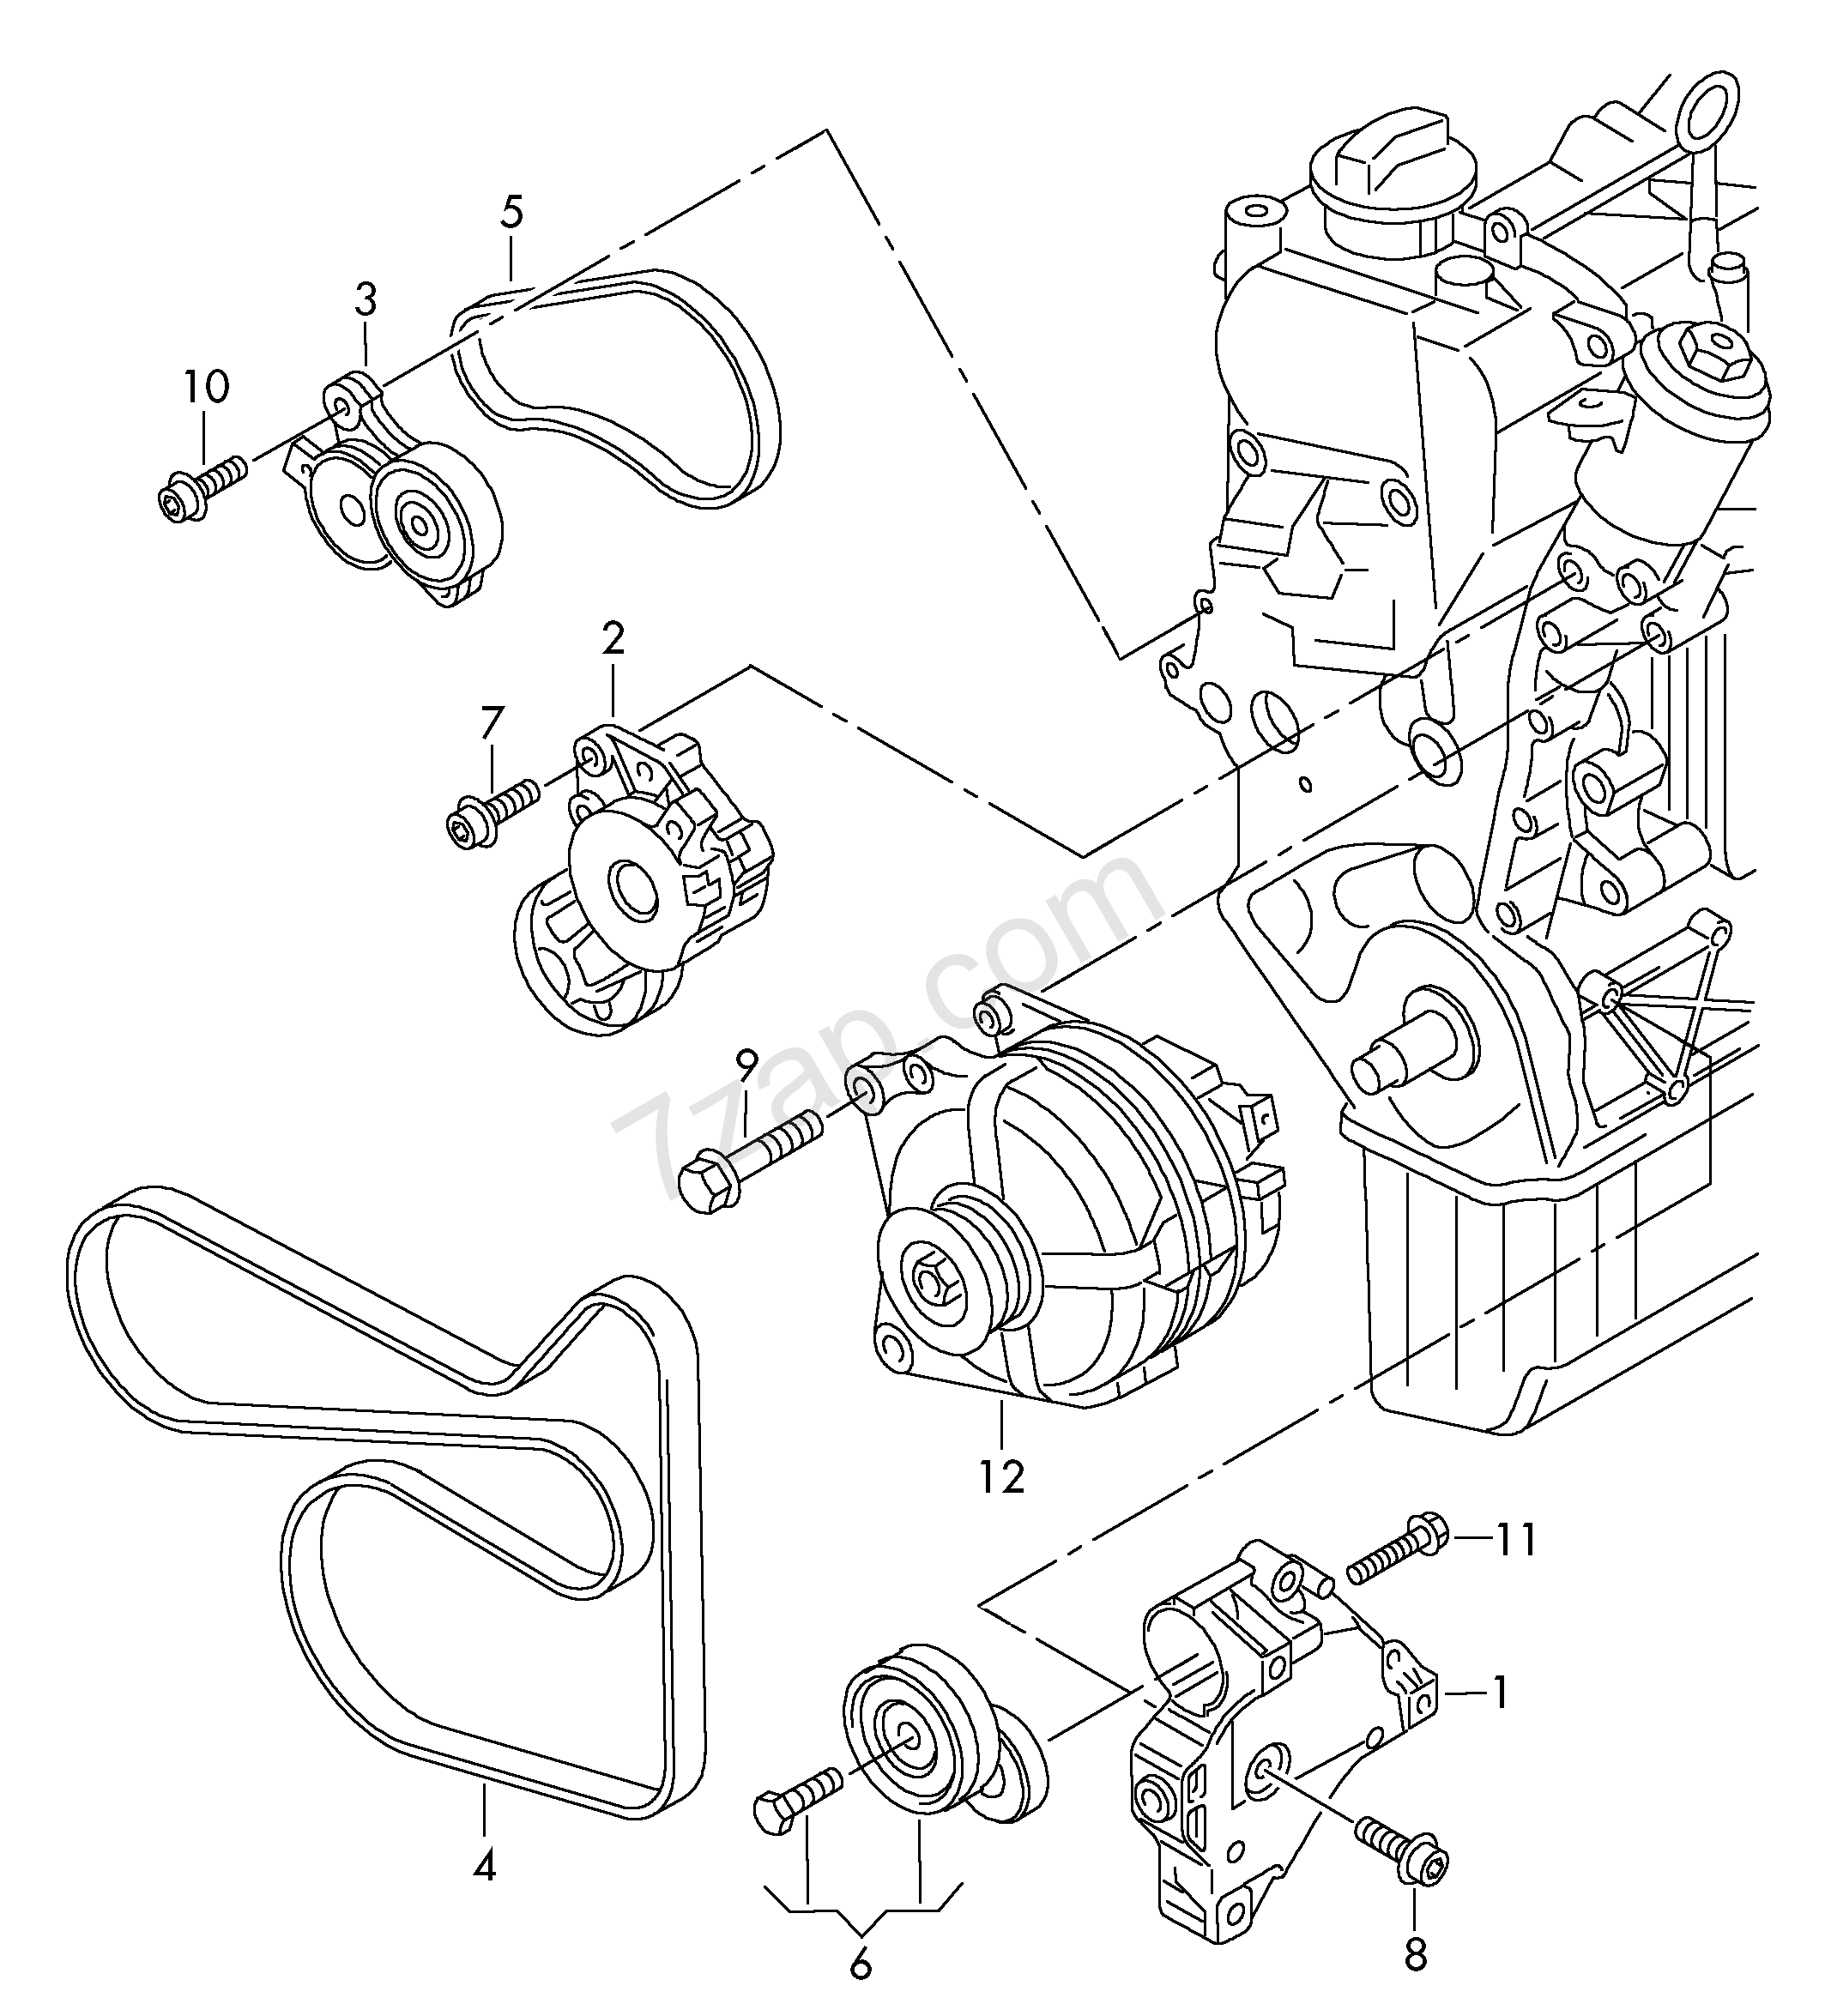 Volkswagen Parts Usa: Connecting And Mounting Parts For Alternator; Pol... CC